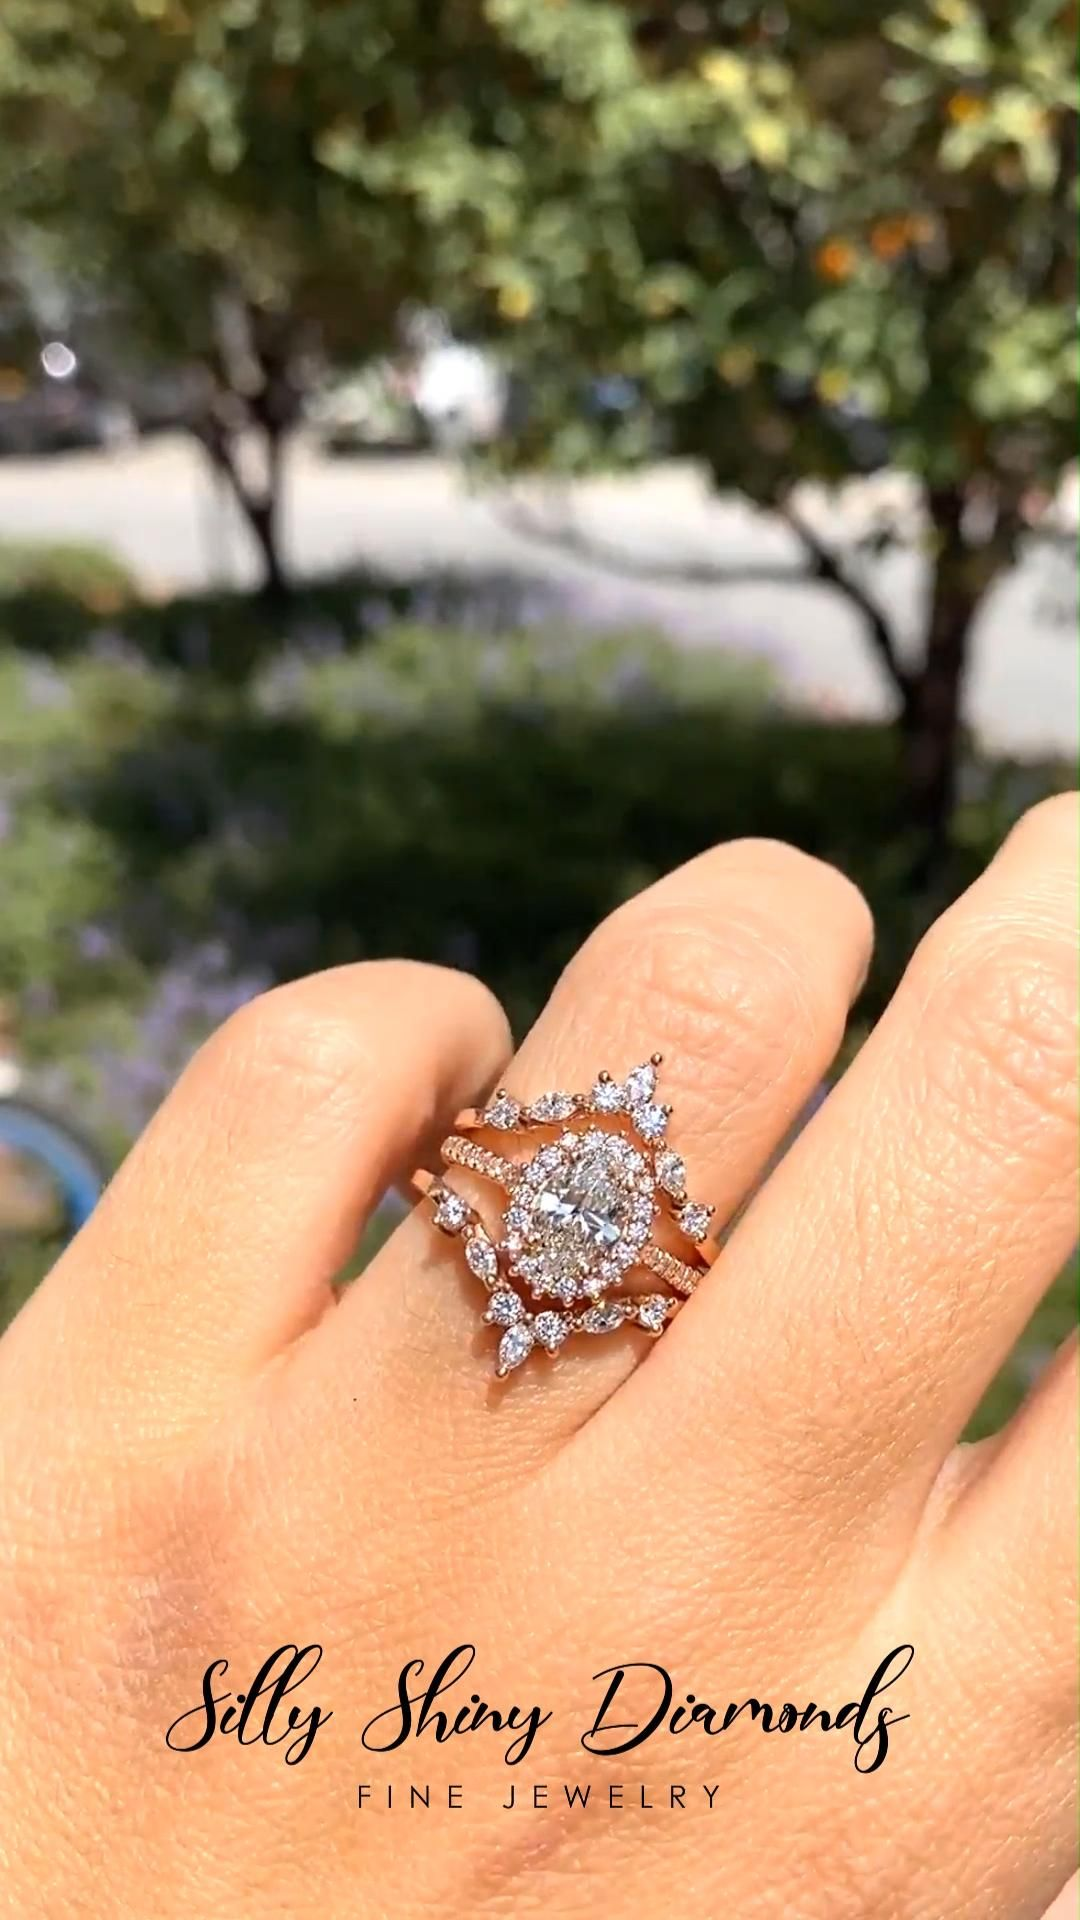 Engagement Rings Ideas Nia Two Hermes 1 55 Oval Diamond Halo Unique Engagement Wedding Three Rings Set Bride Wedding Network Explore Discover The Best And The